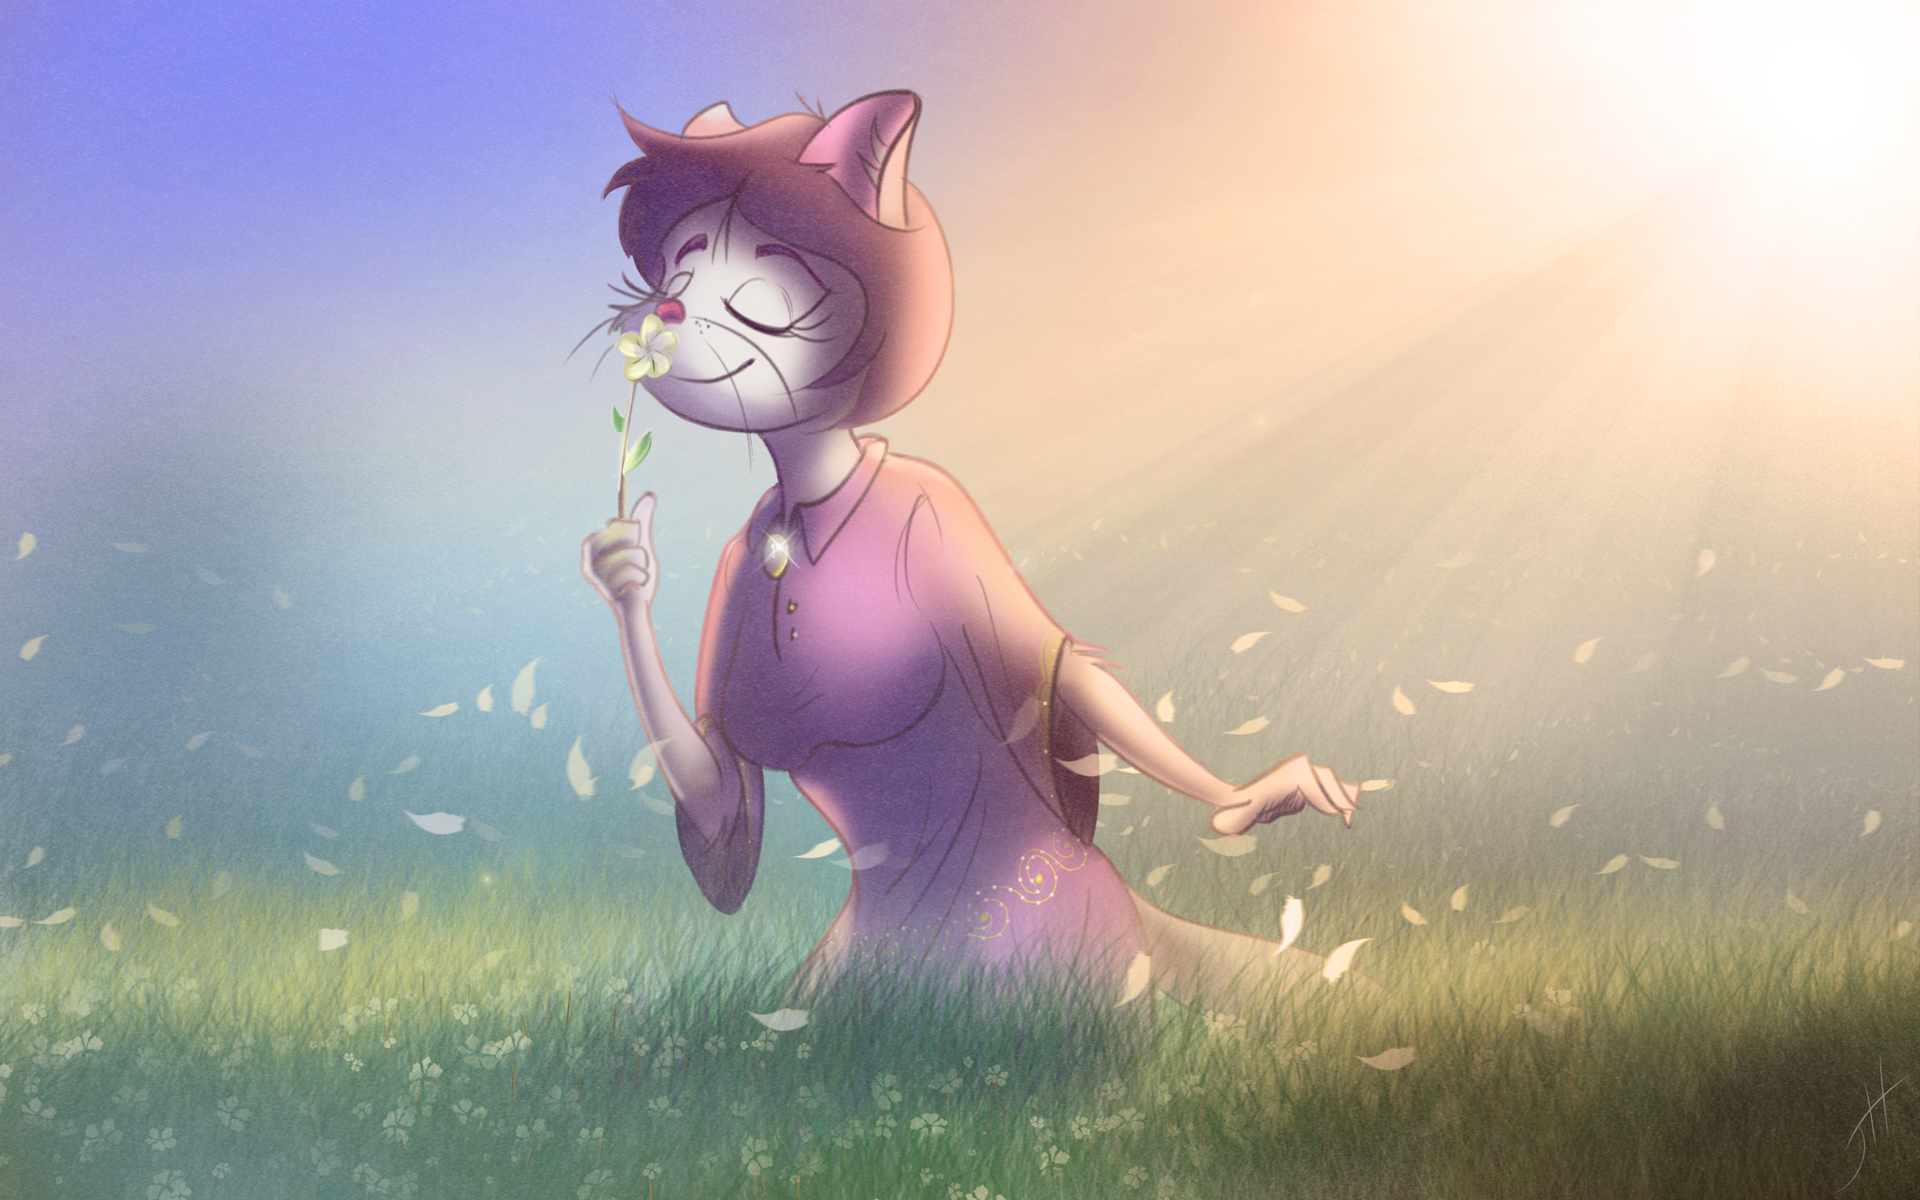 Lily in the Wind